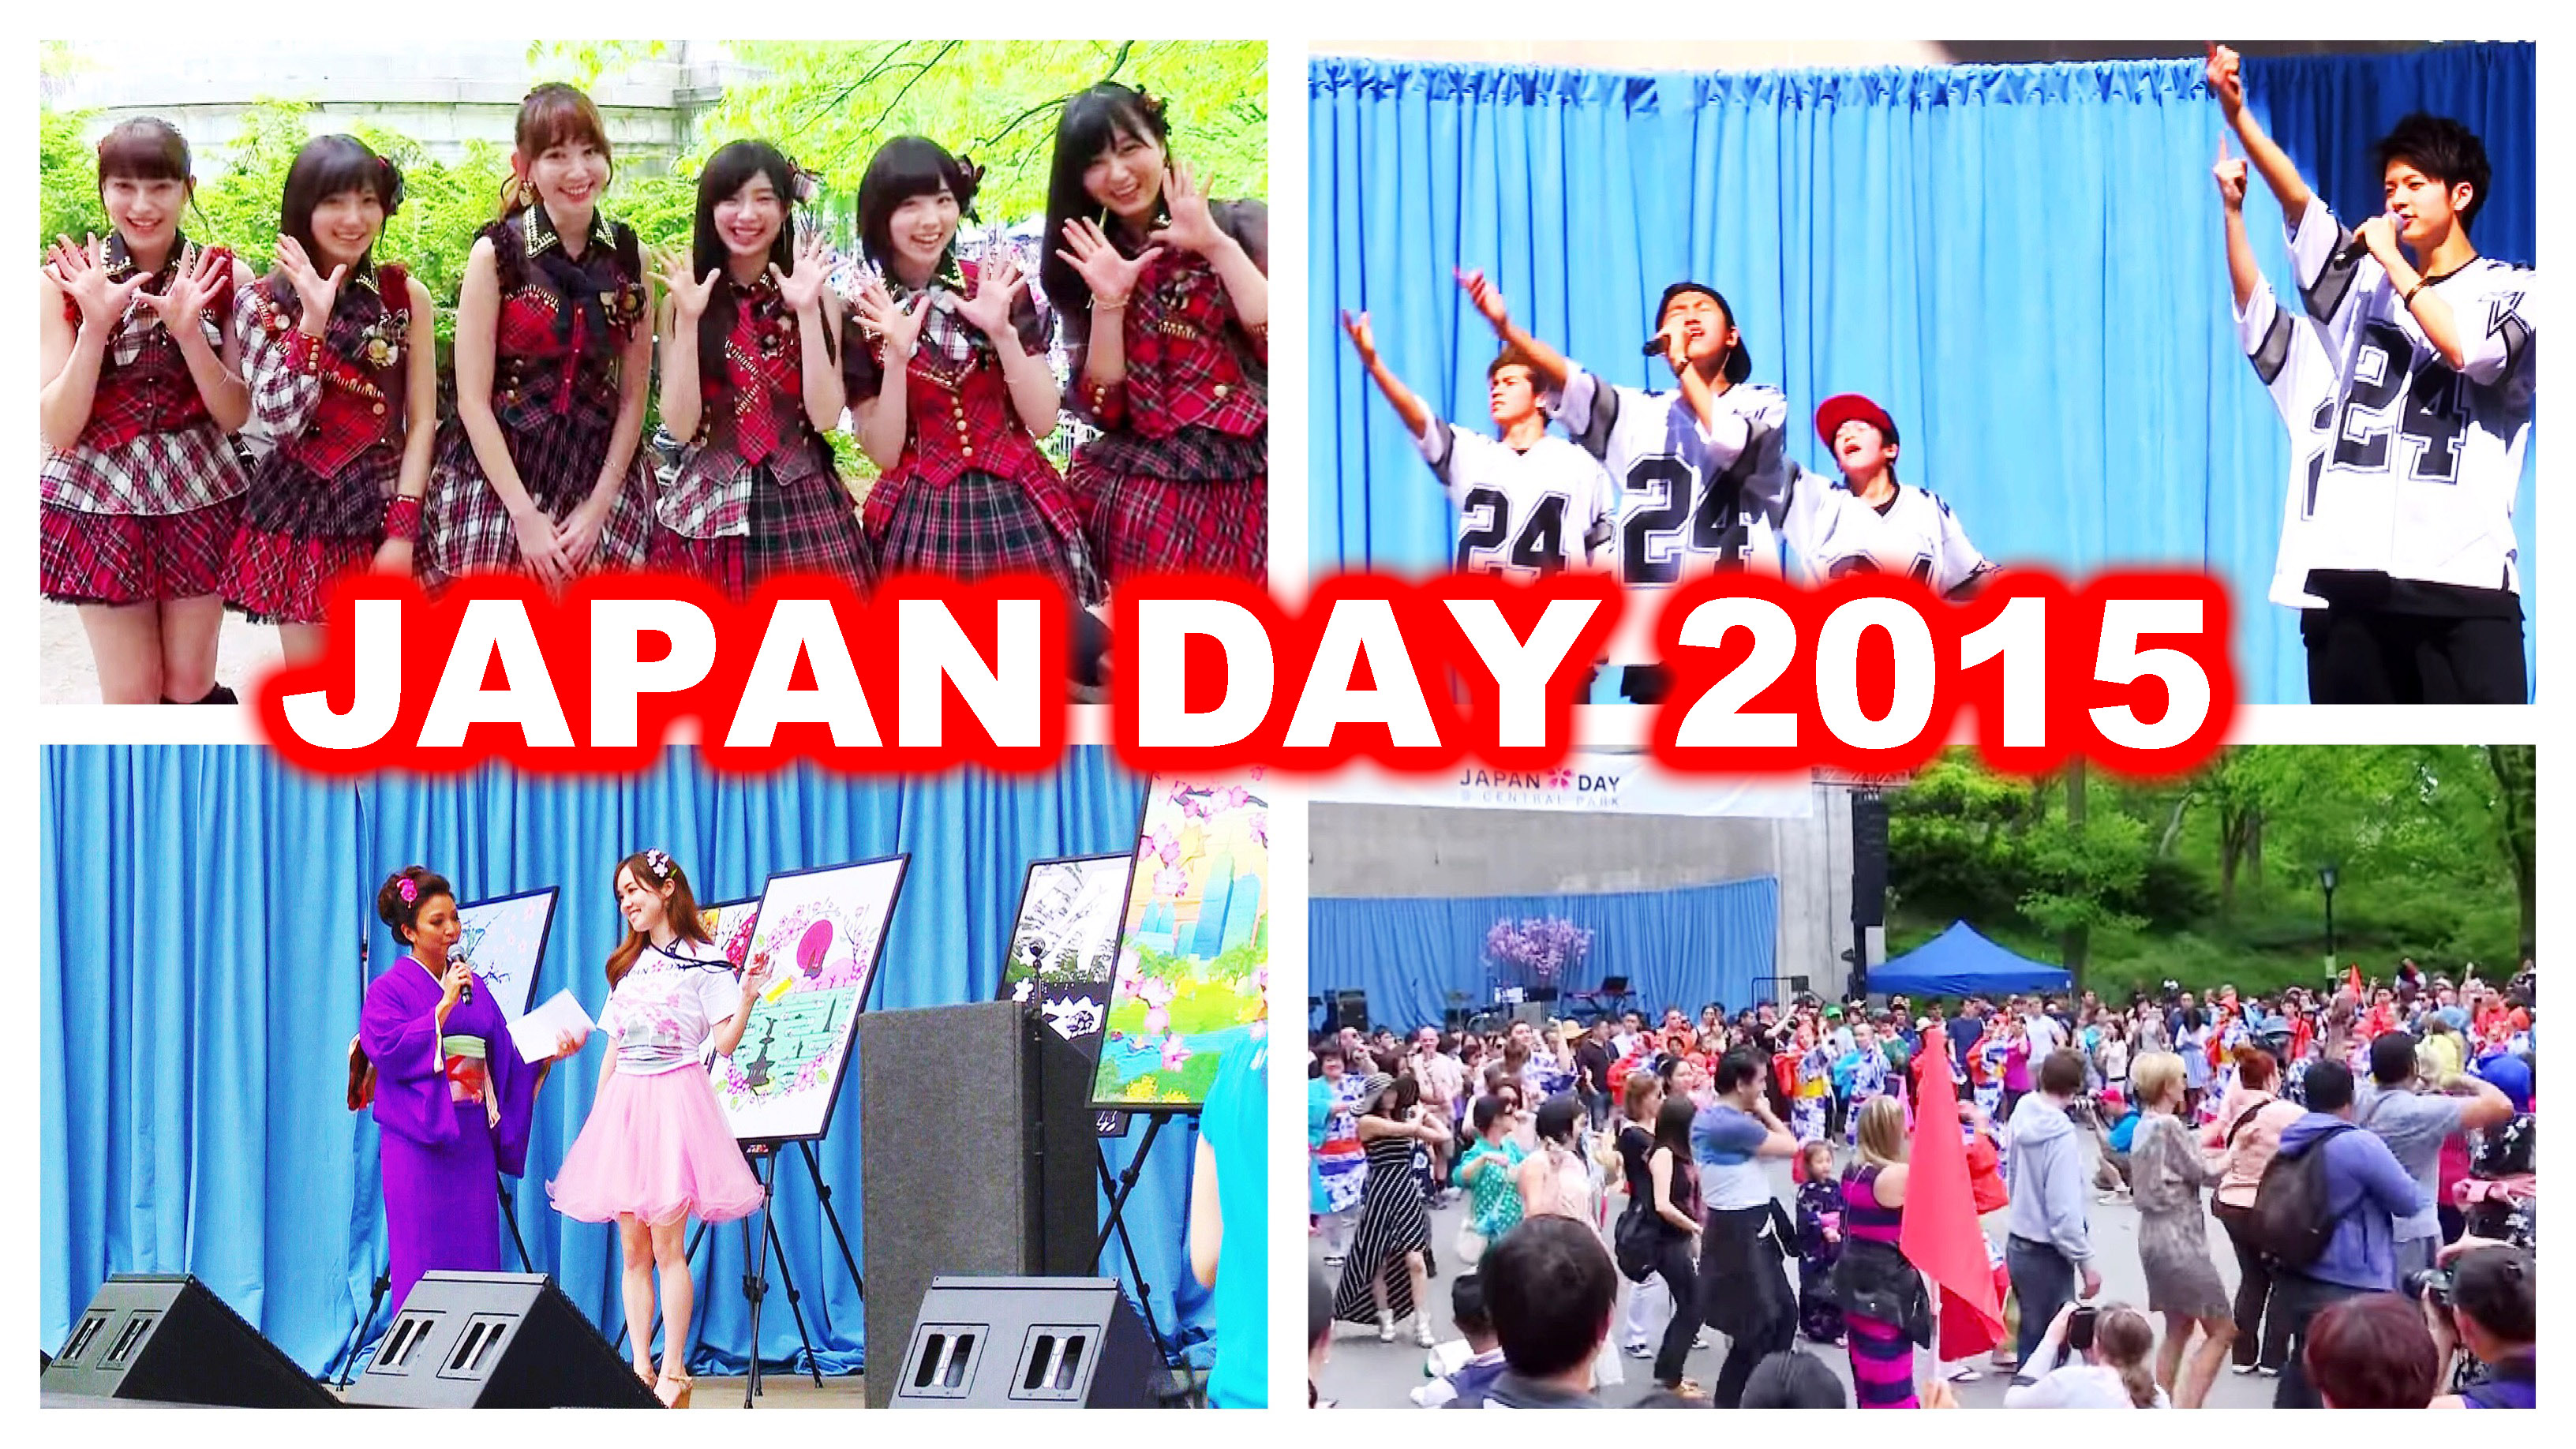 AKB48も参加!日本のお祭り in NY、Japan Day 2015が開催!/ JAPAN DAY 2015!! AKB48 in NY, Stage Performances, & Japanese Culture (Eng subs)